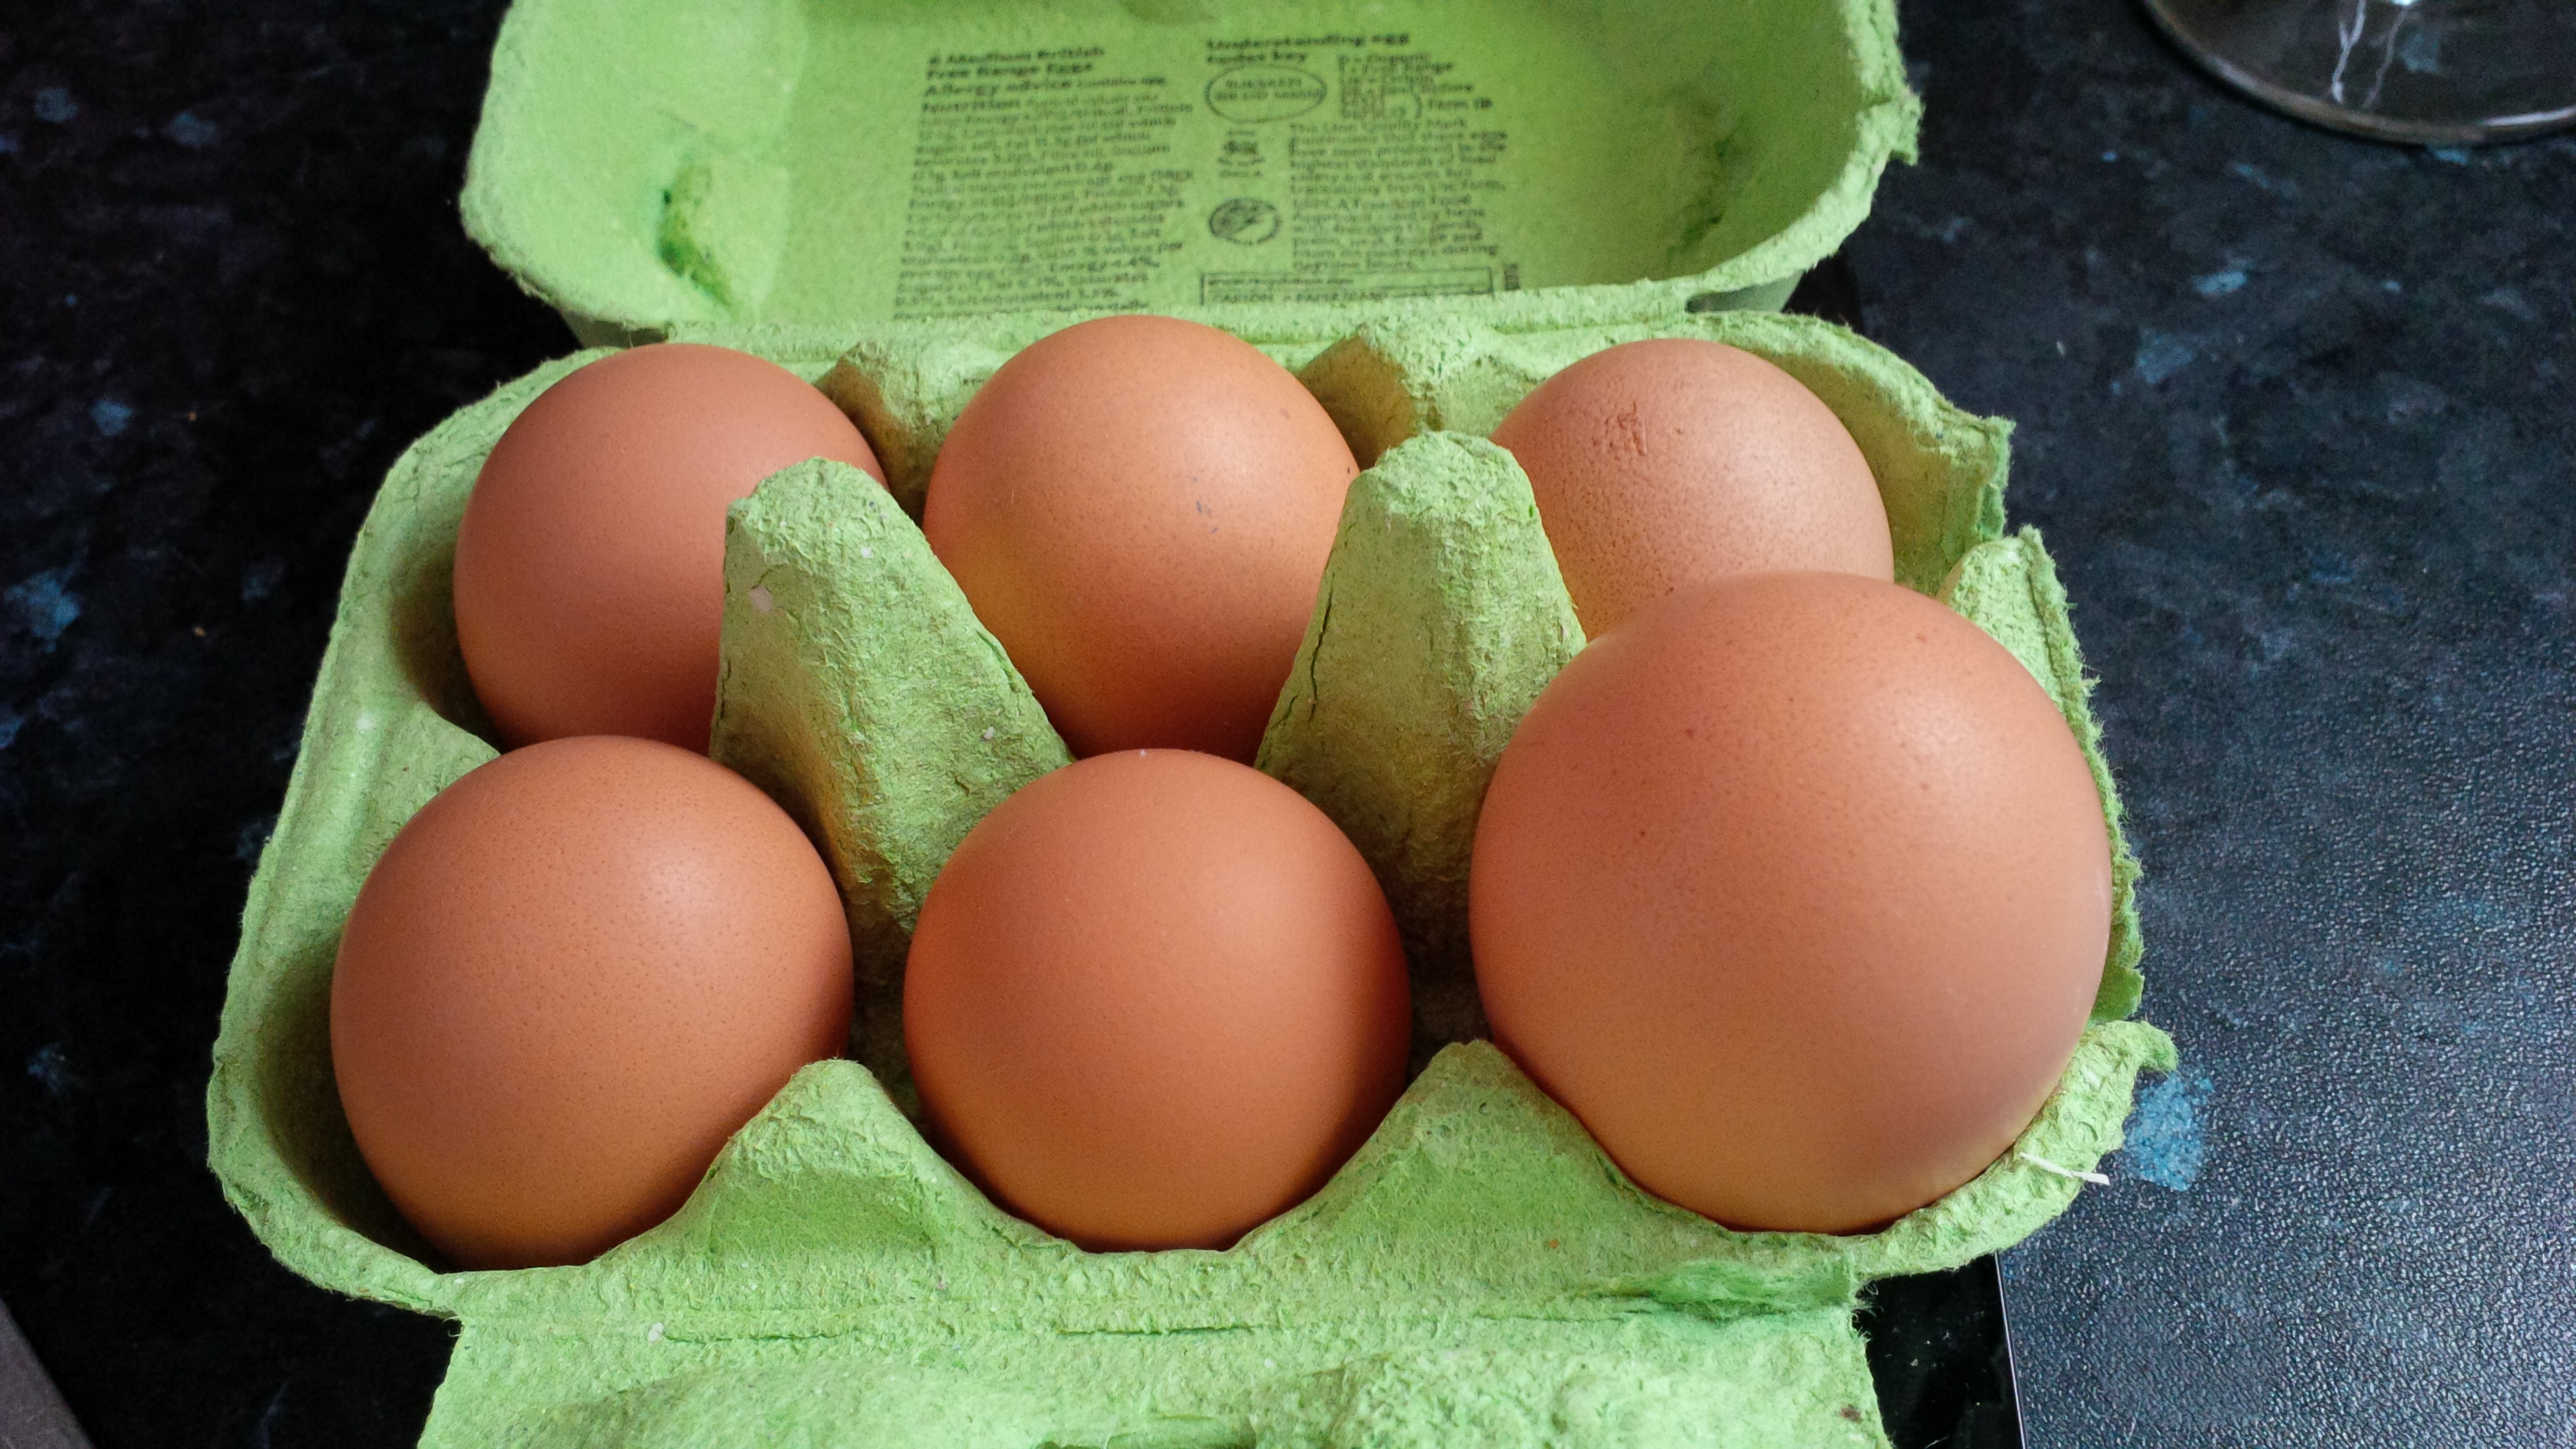 James McPherson's hens lay all sorts of sized eggs